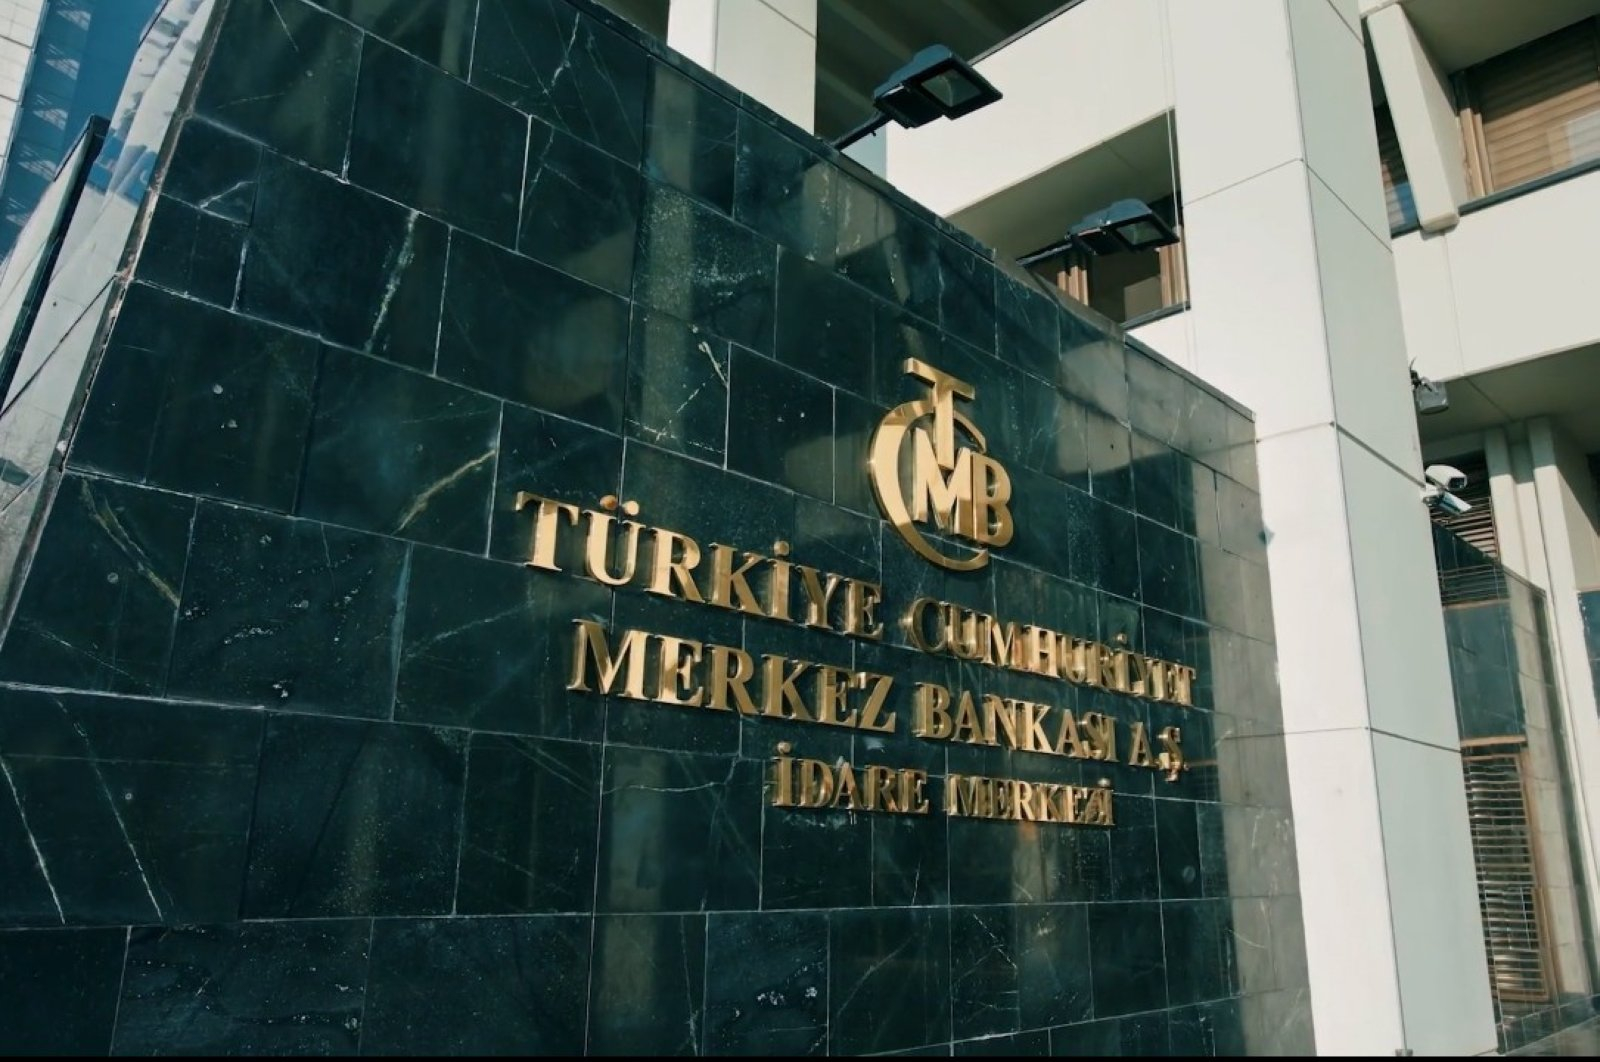 Headquarters of the Central Bank of the Republic of Turkey is seen in Ankara, Thursday, March 26, 2020. (İHA Photo)